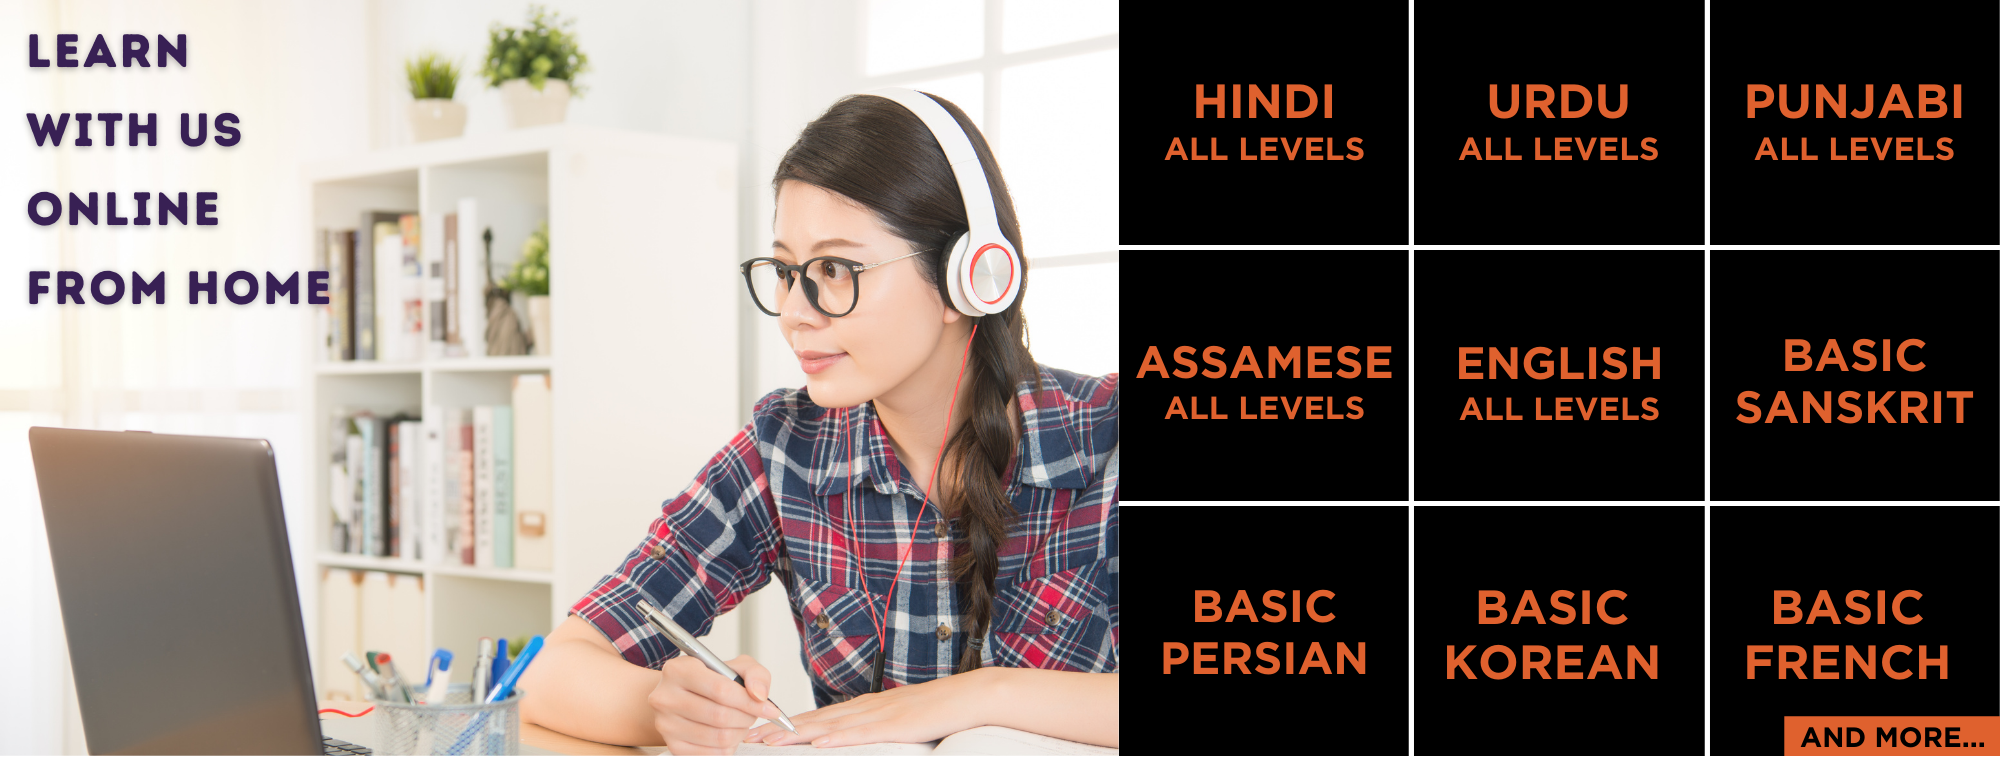 Learn Hindi Urdu Online